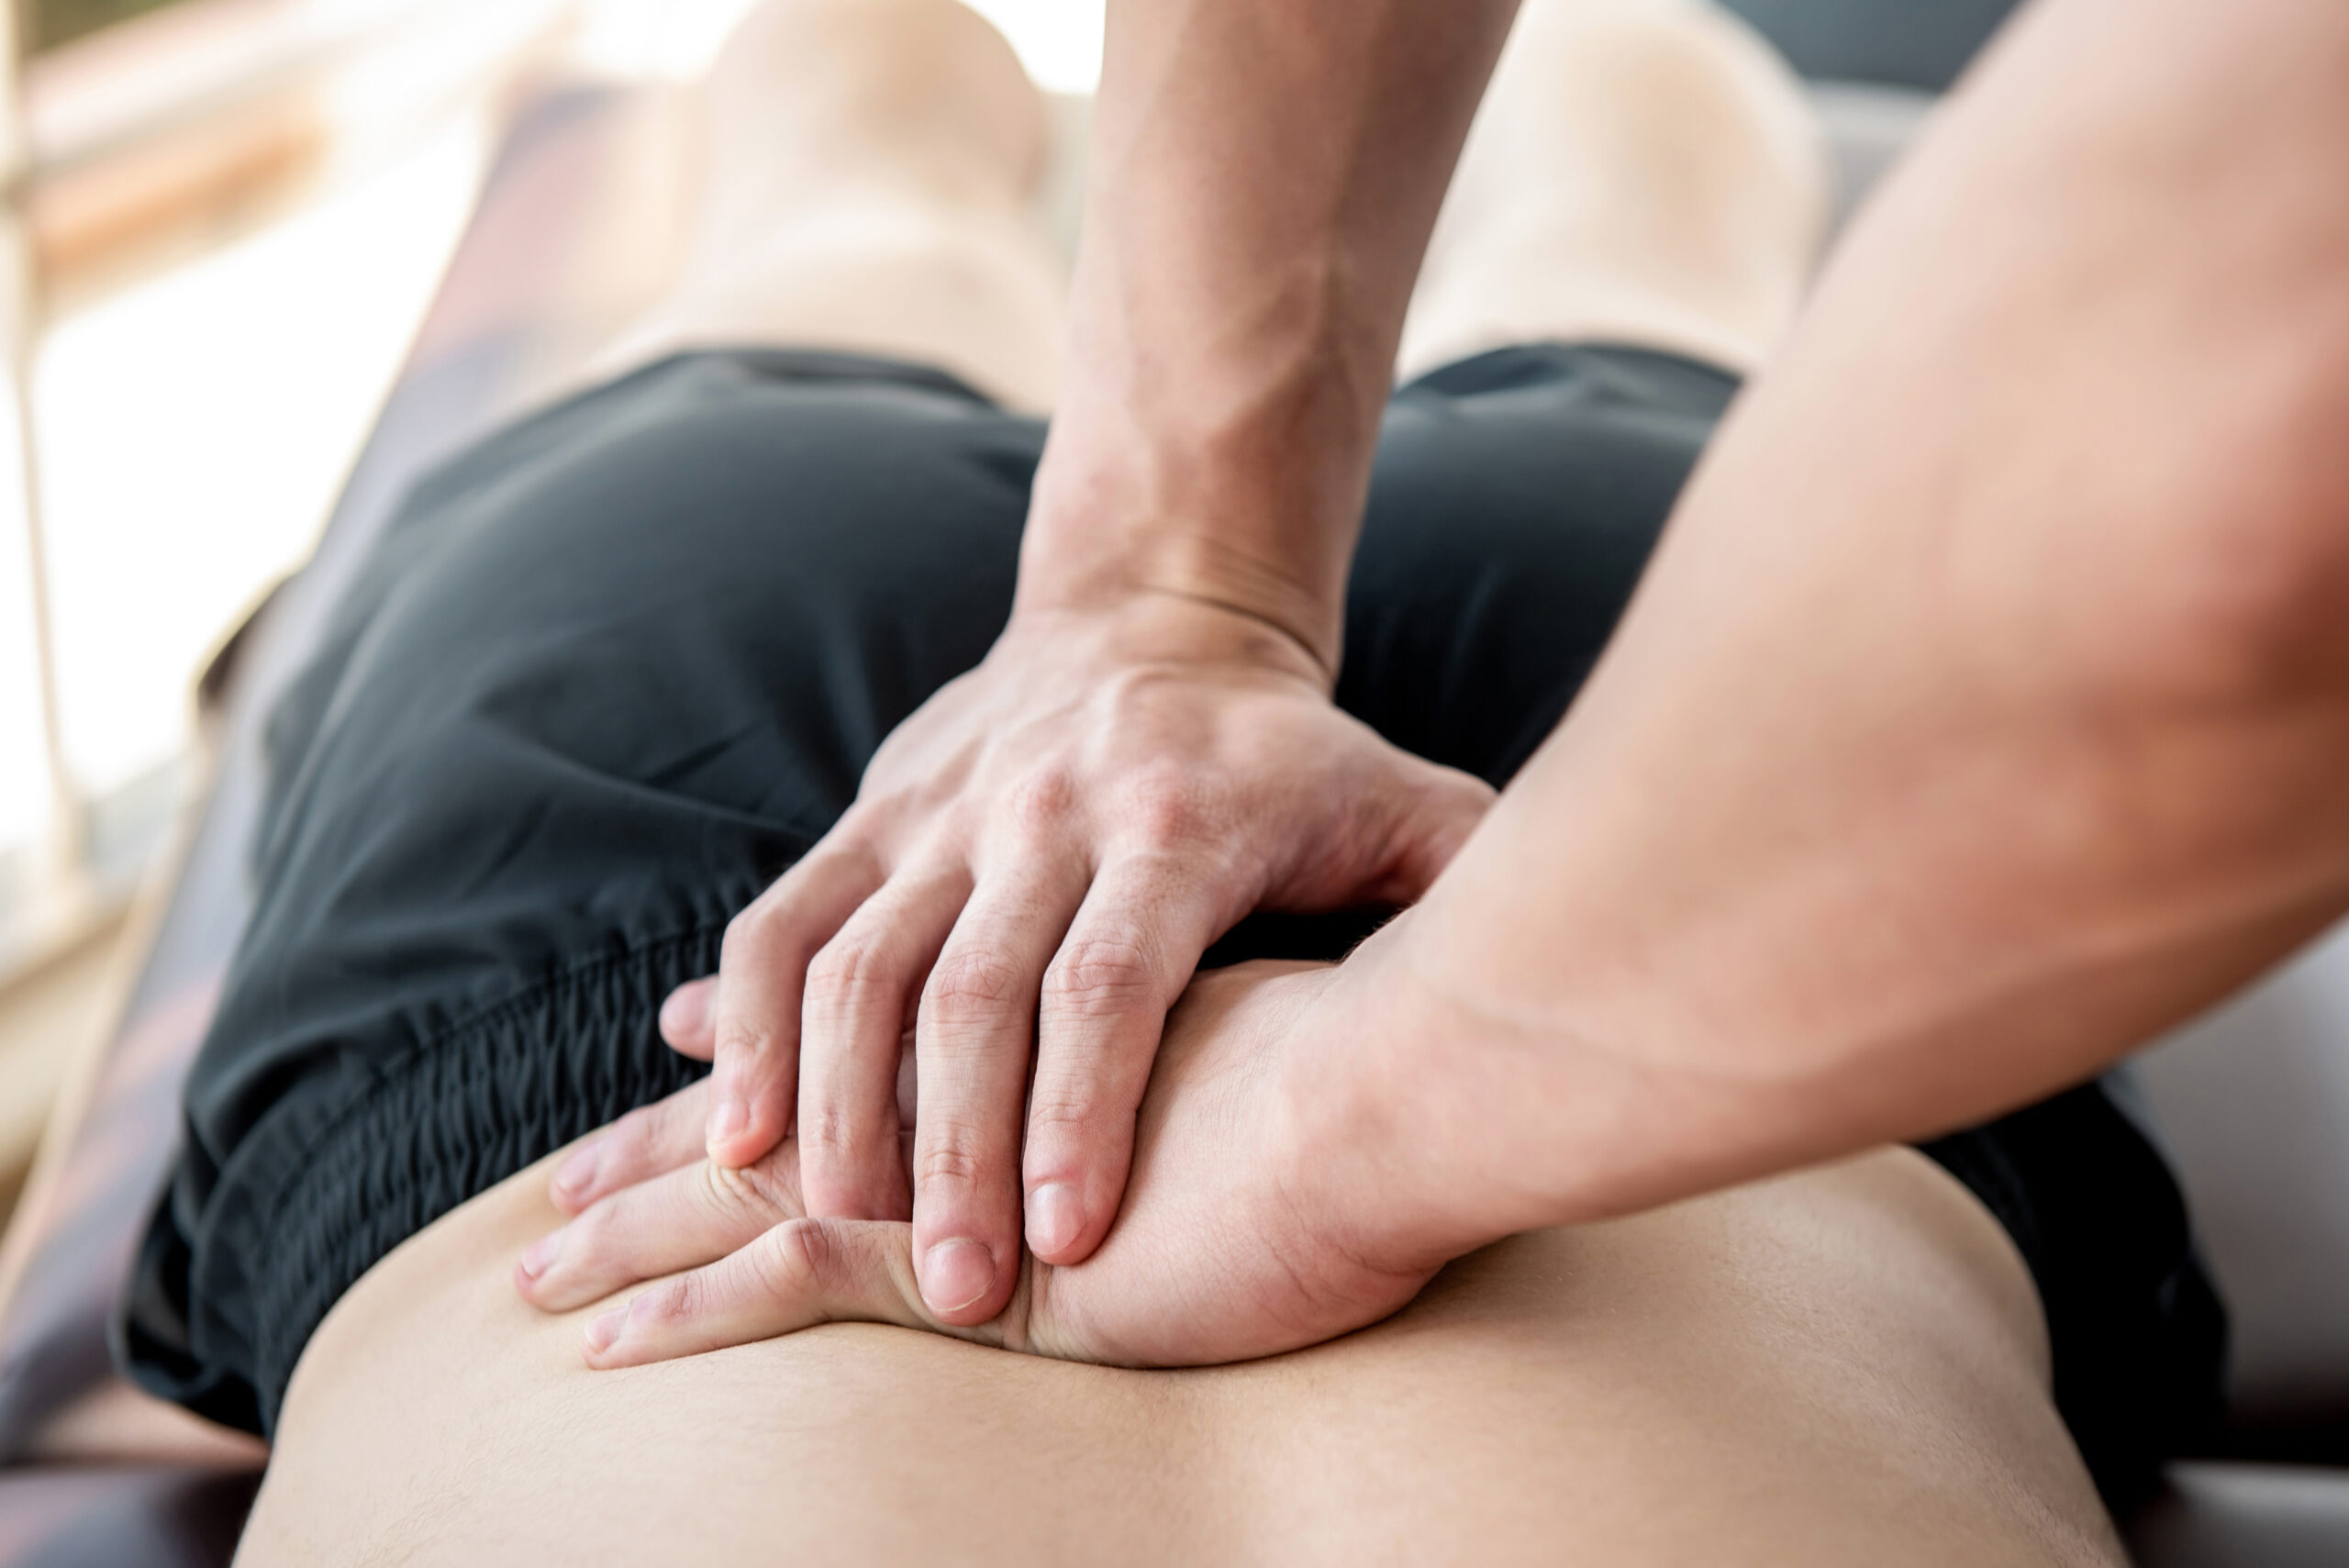 Therapist,Giving,Lower,Back,Sports,Massage,To,Athlete,Male,Patient